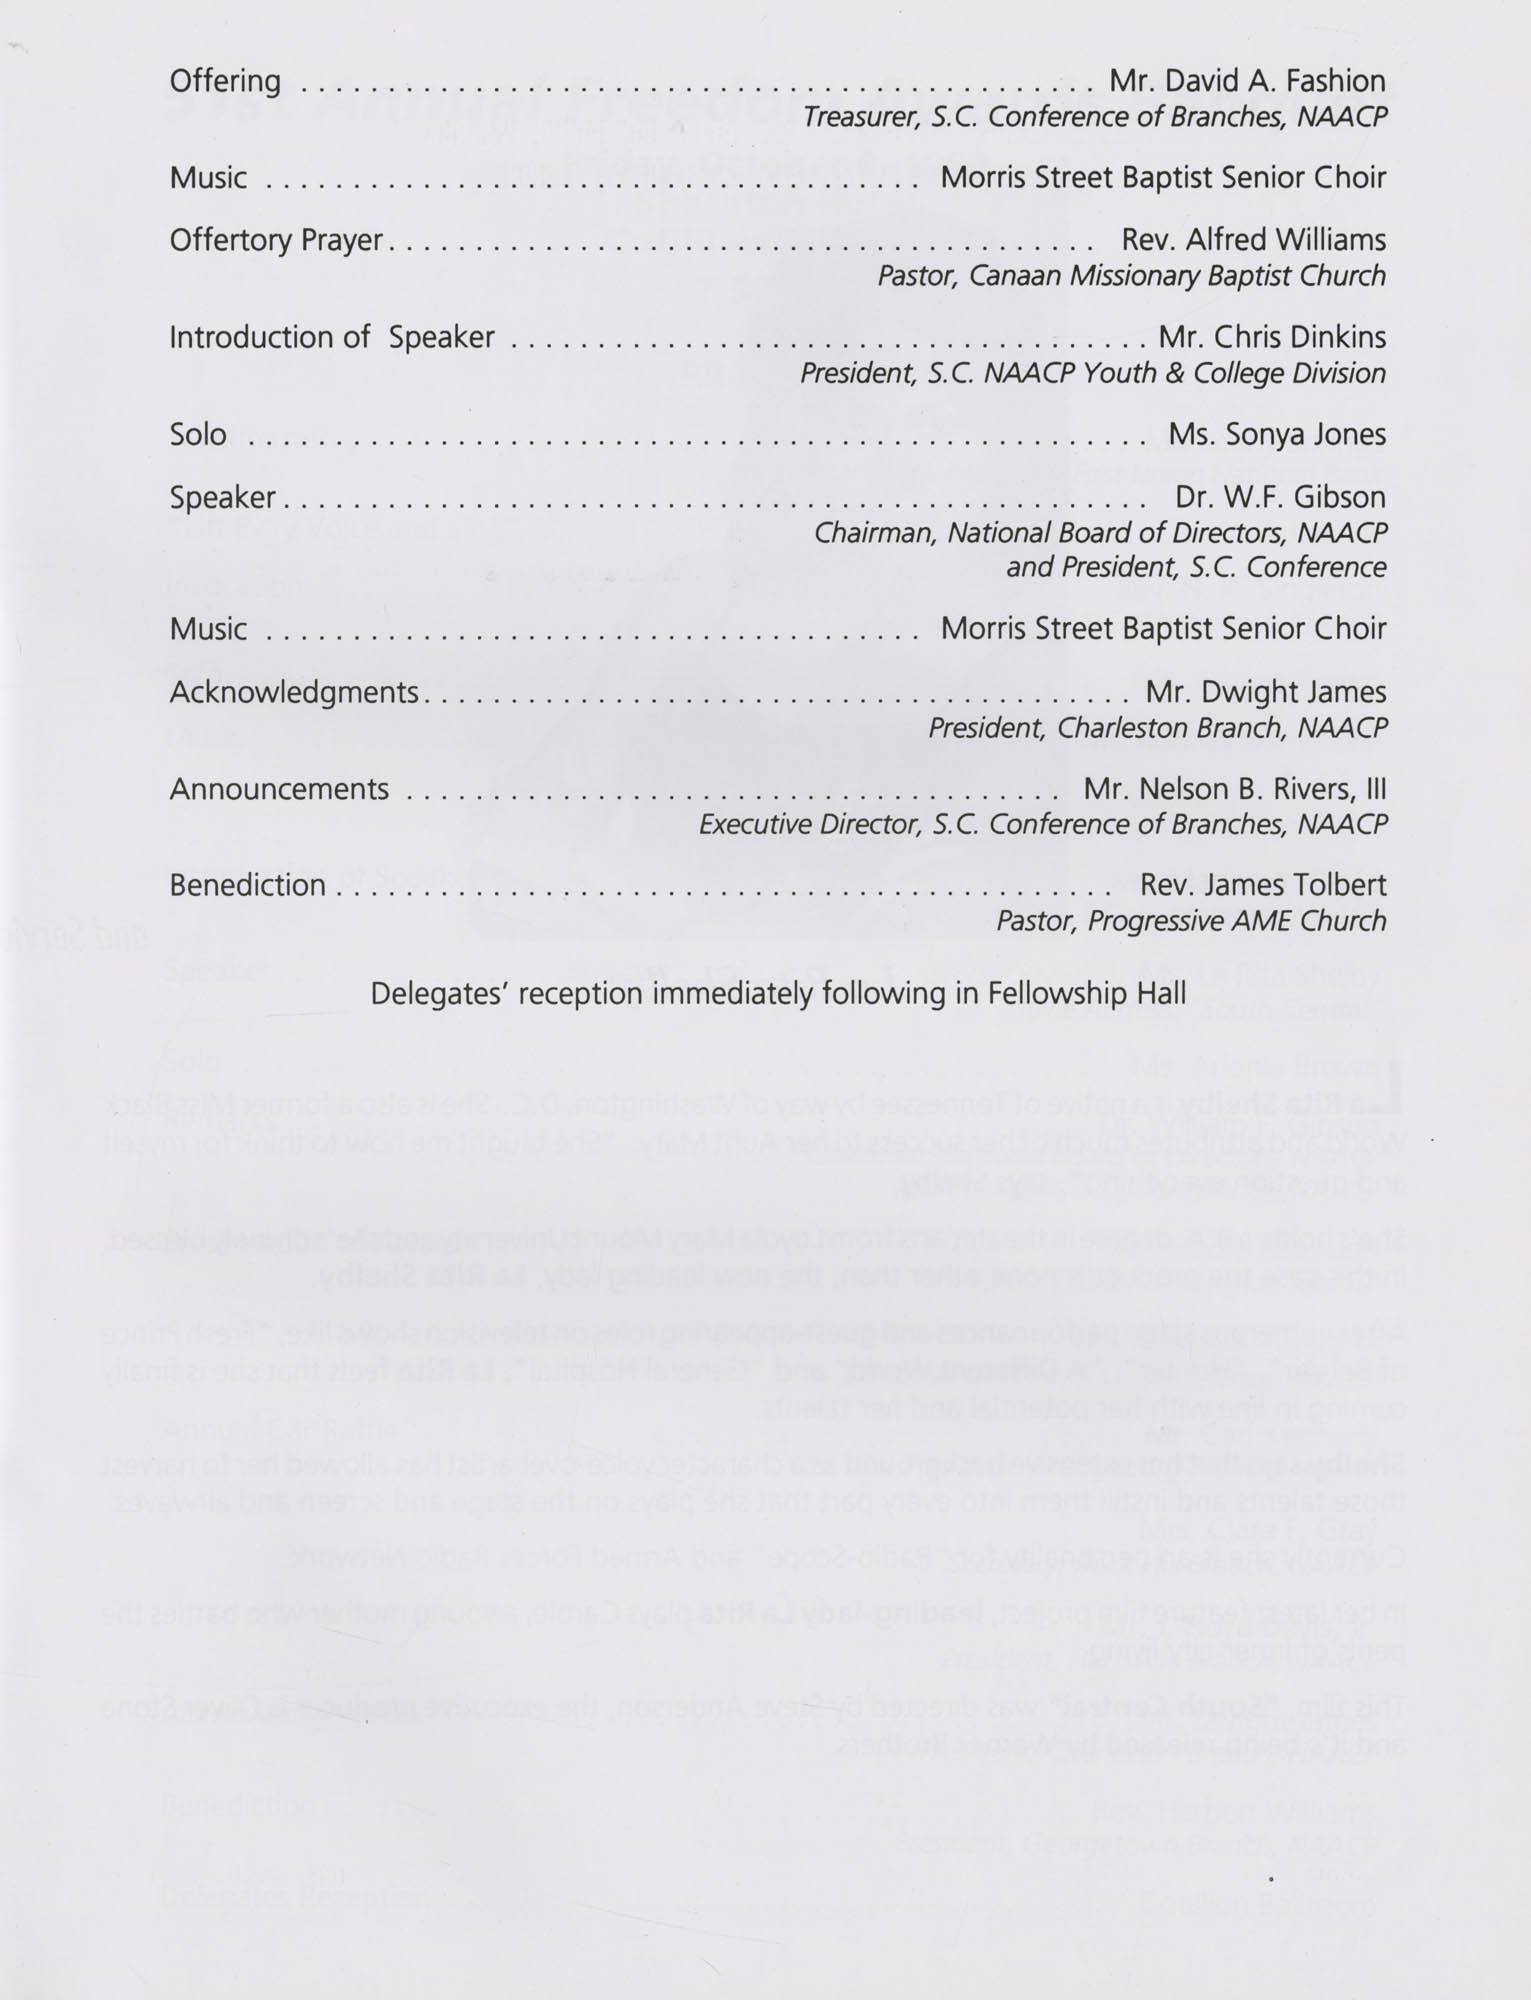 Charleston Branch of the NAACP 51st Annual State Convention Program, Page 17